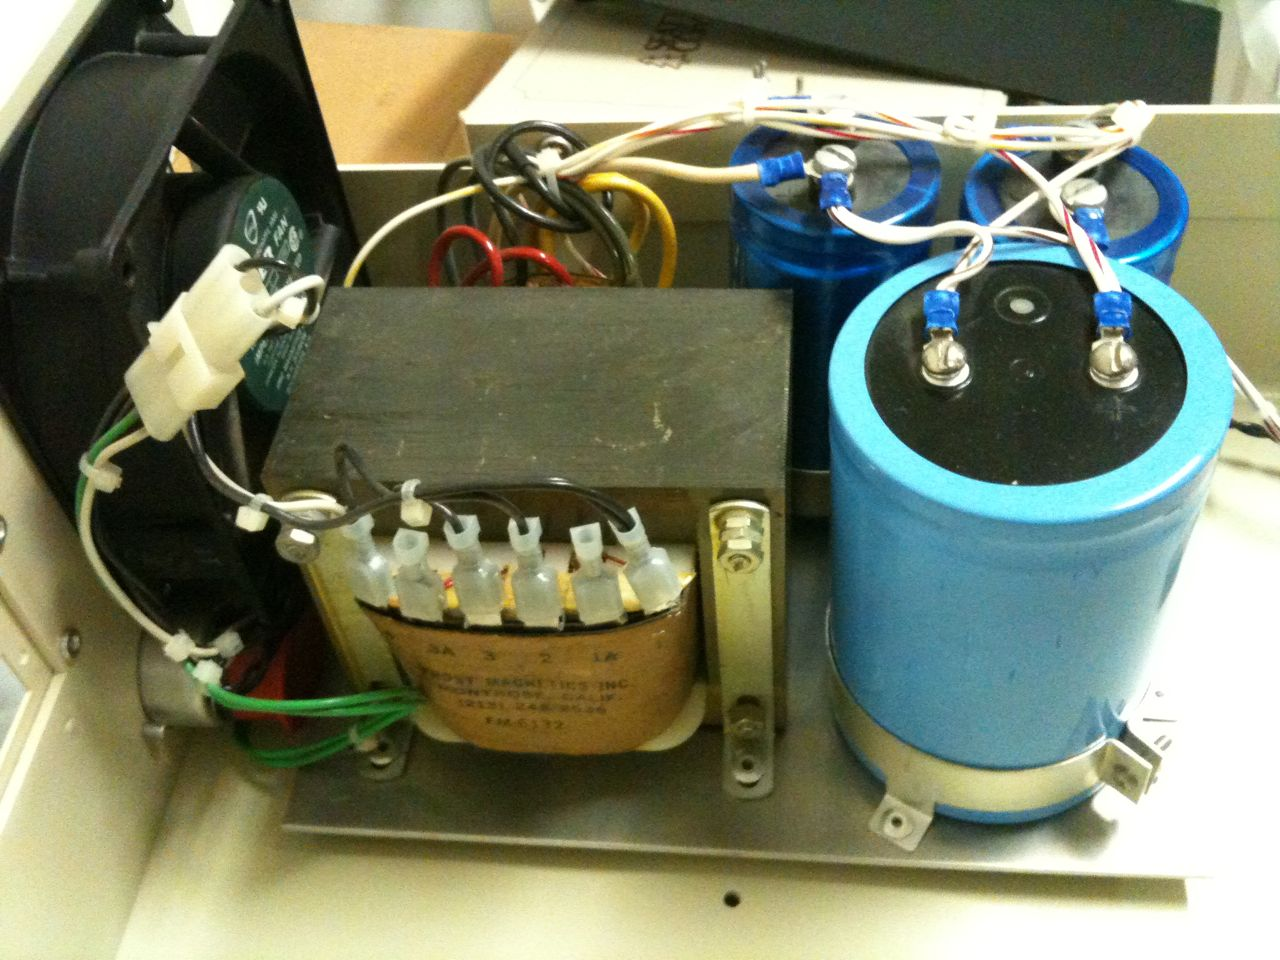 S 100 Computer Unregulator Power Supply Look At The Beer Can Sized Capacitor 150000f It Is Still Intact After More Than 25 Years This A Very Basic Unregulated